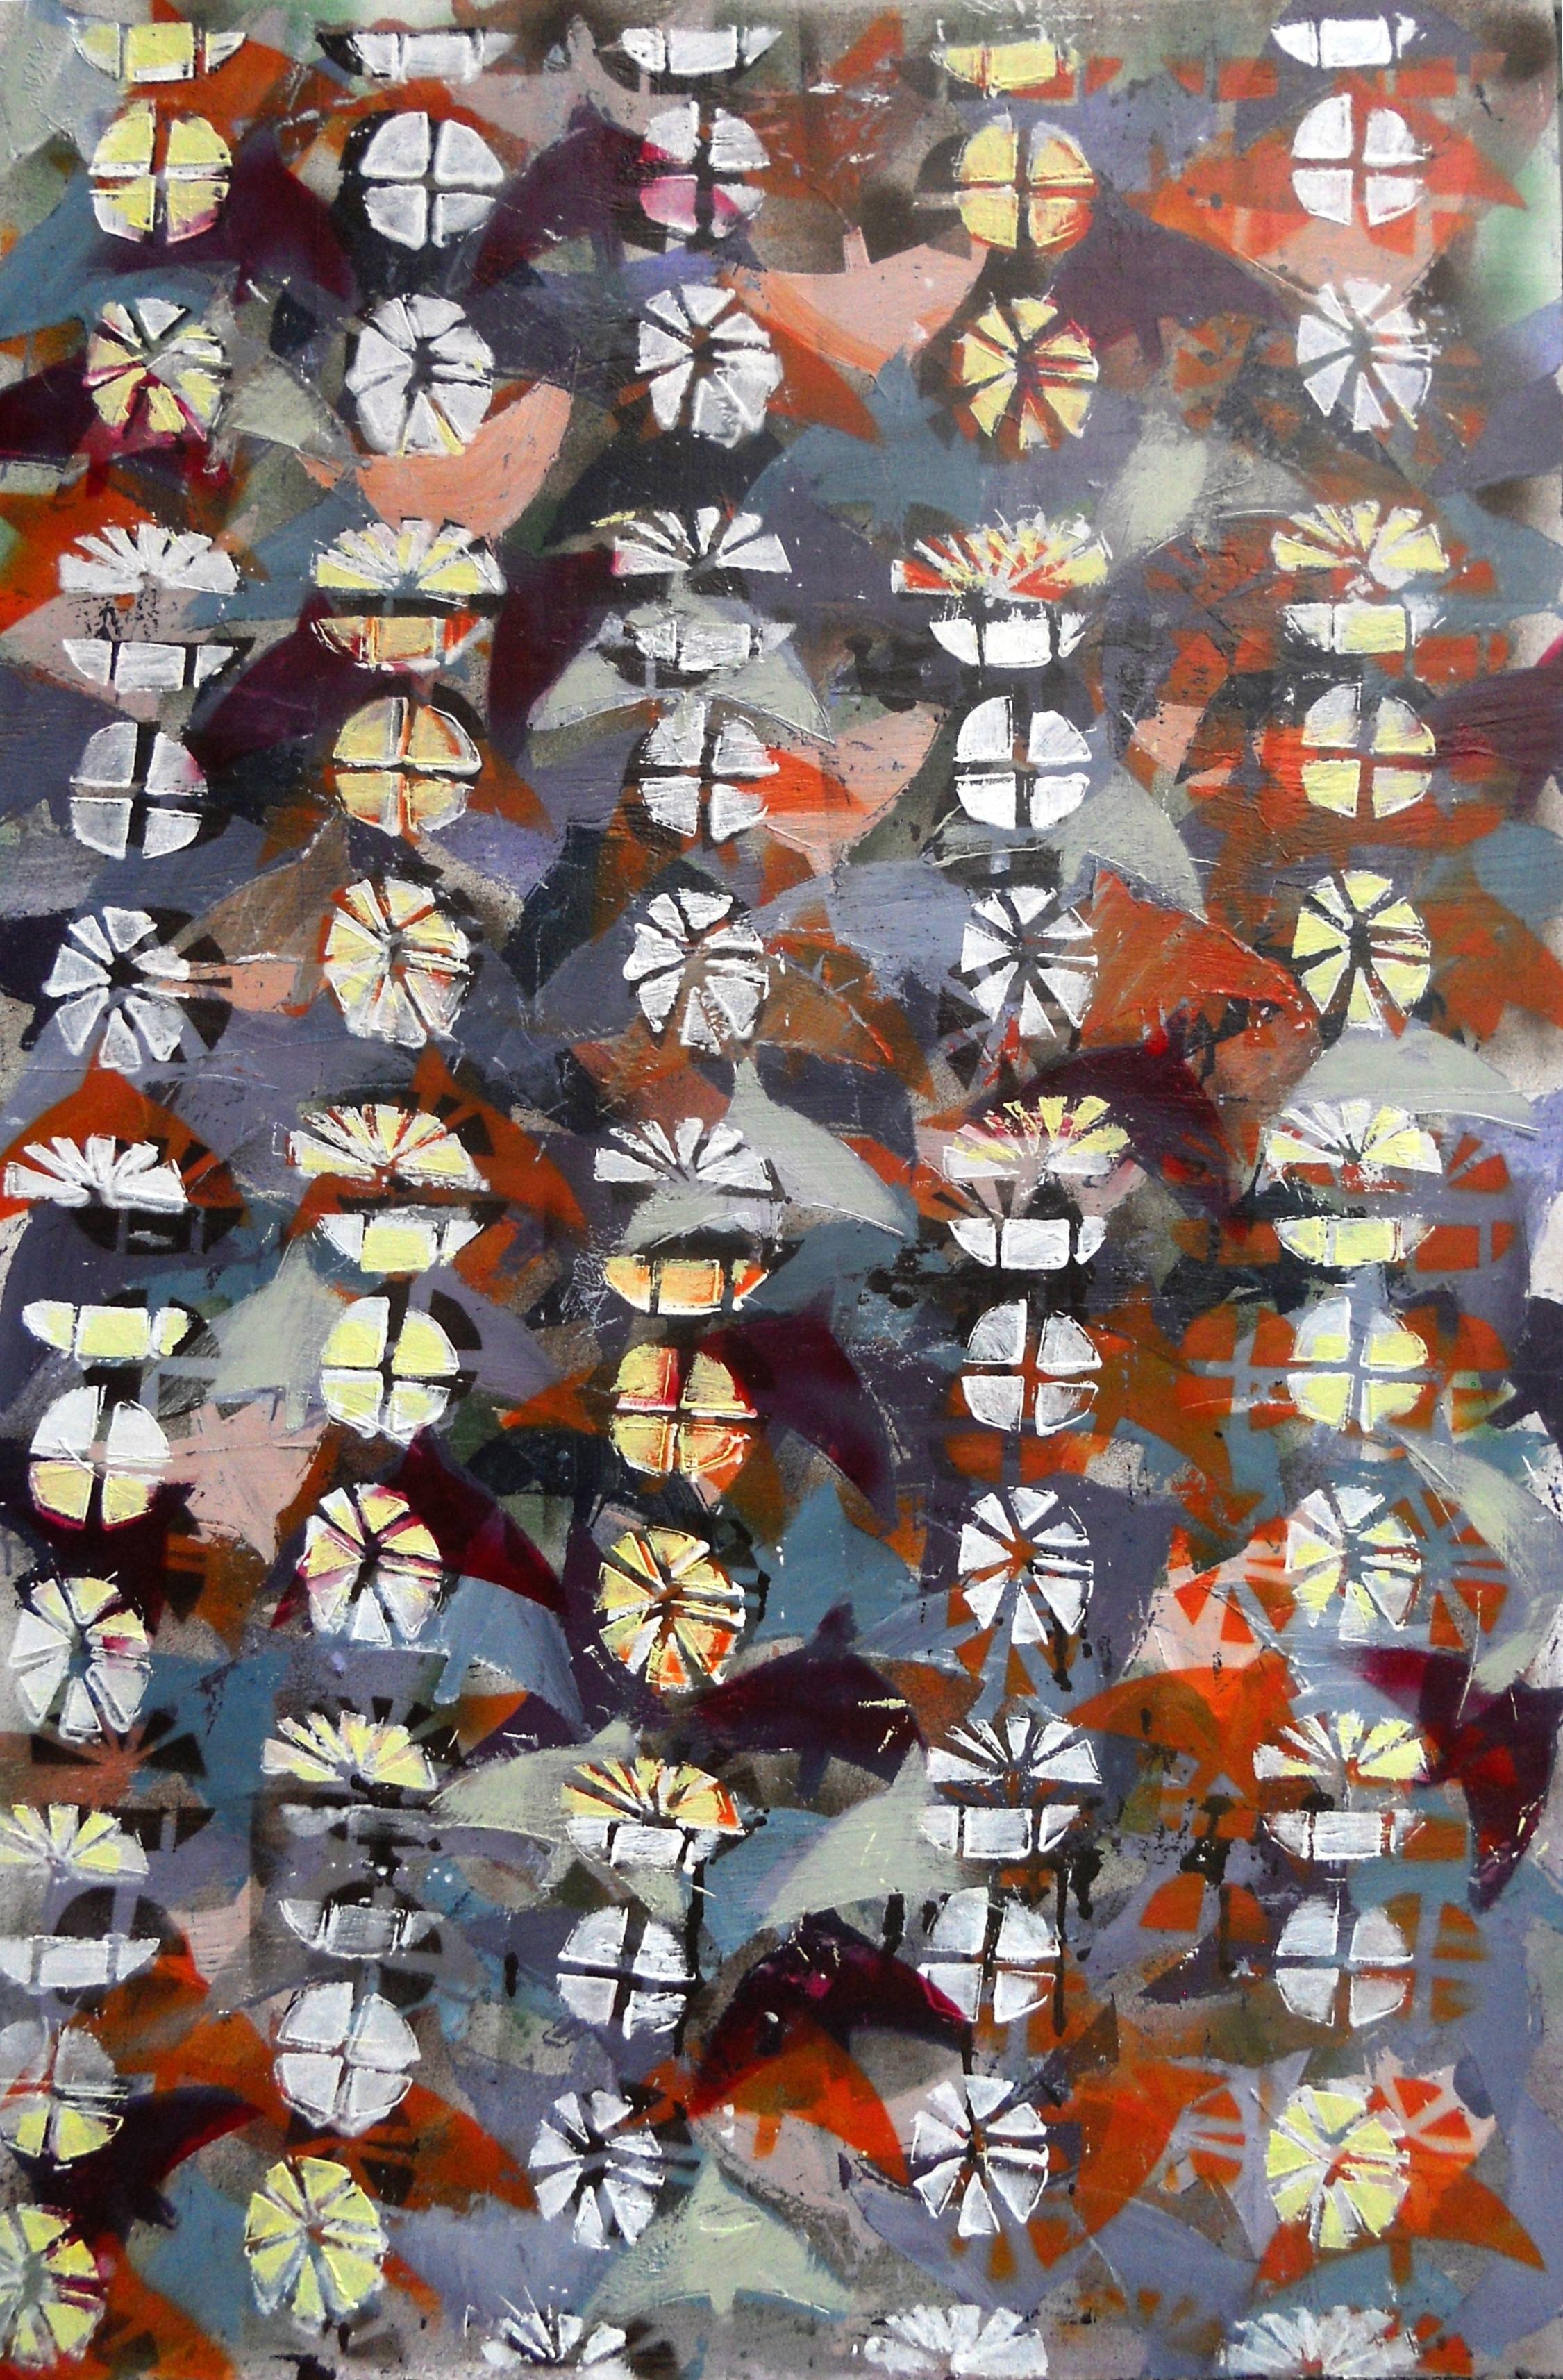 Peter's Garden 2013, Acrylic on board 100cm x 60cm. Exhibited in Nairobi, 2013.jpg